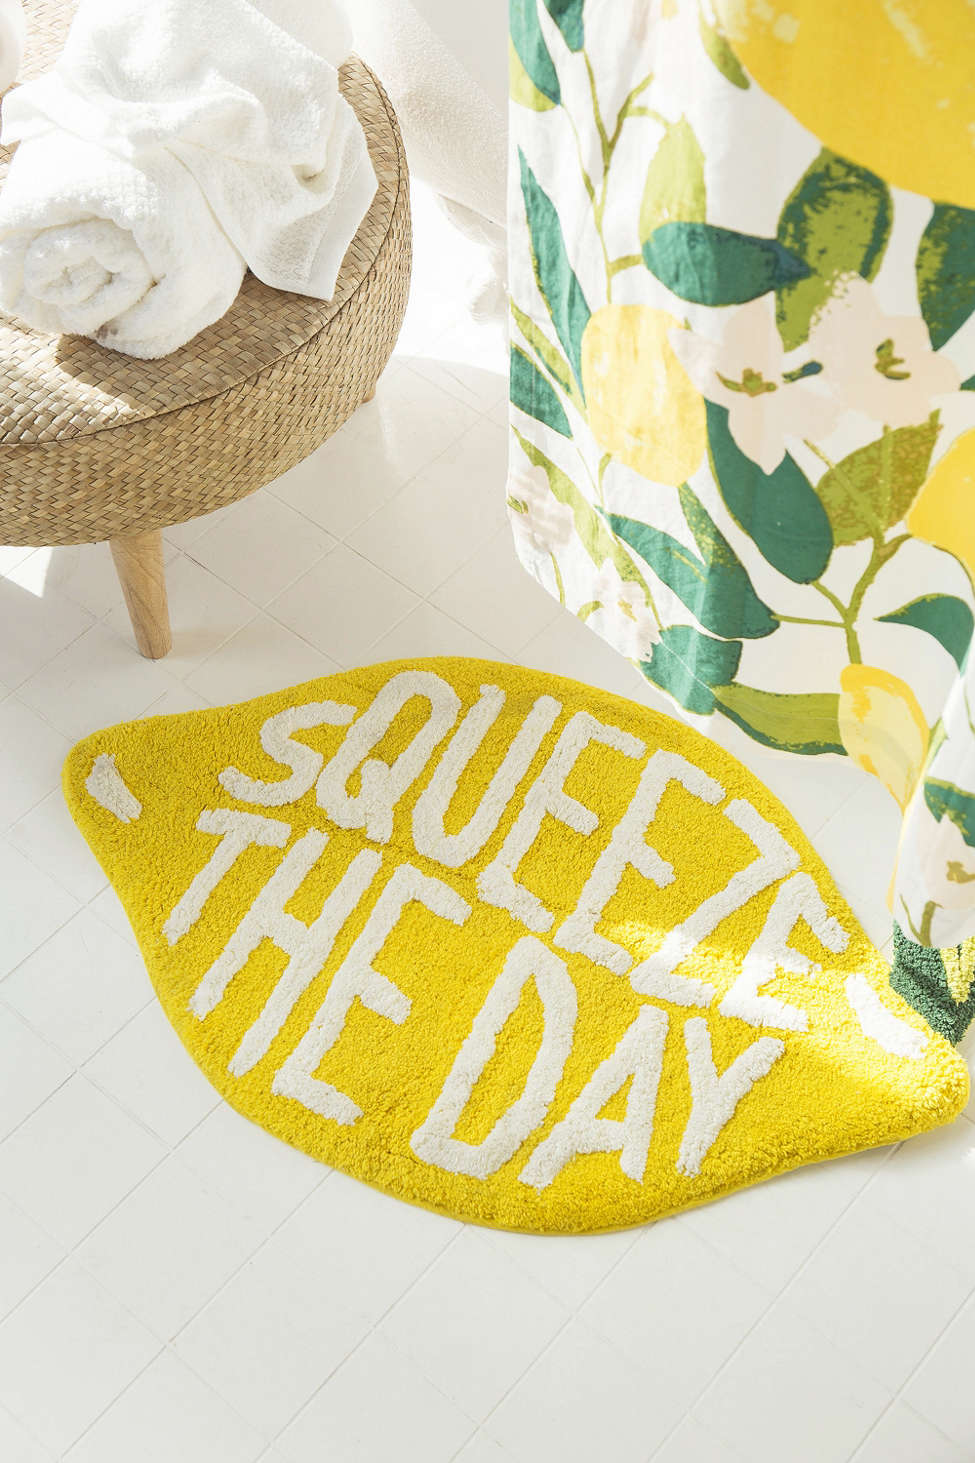 Slide View: 1: Squeeze The Day Bath Mat